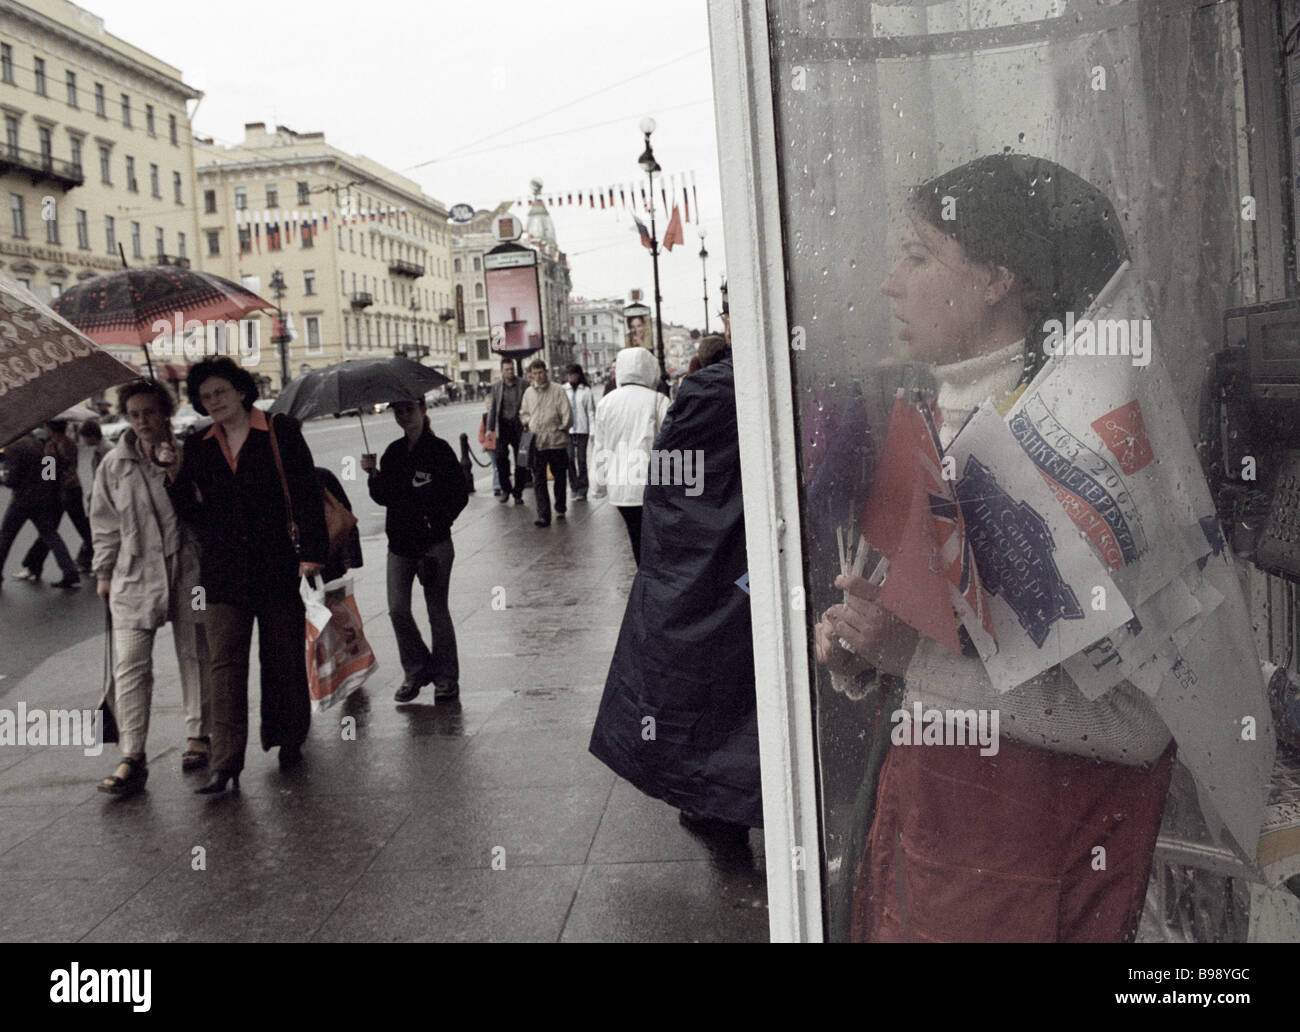 Residents and guests of St Petersburg Nevsky Prospekt - Stock Image